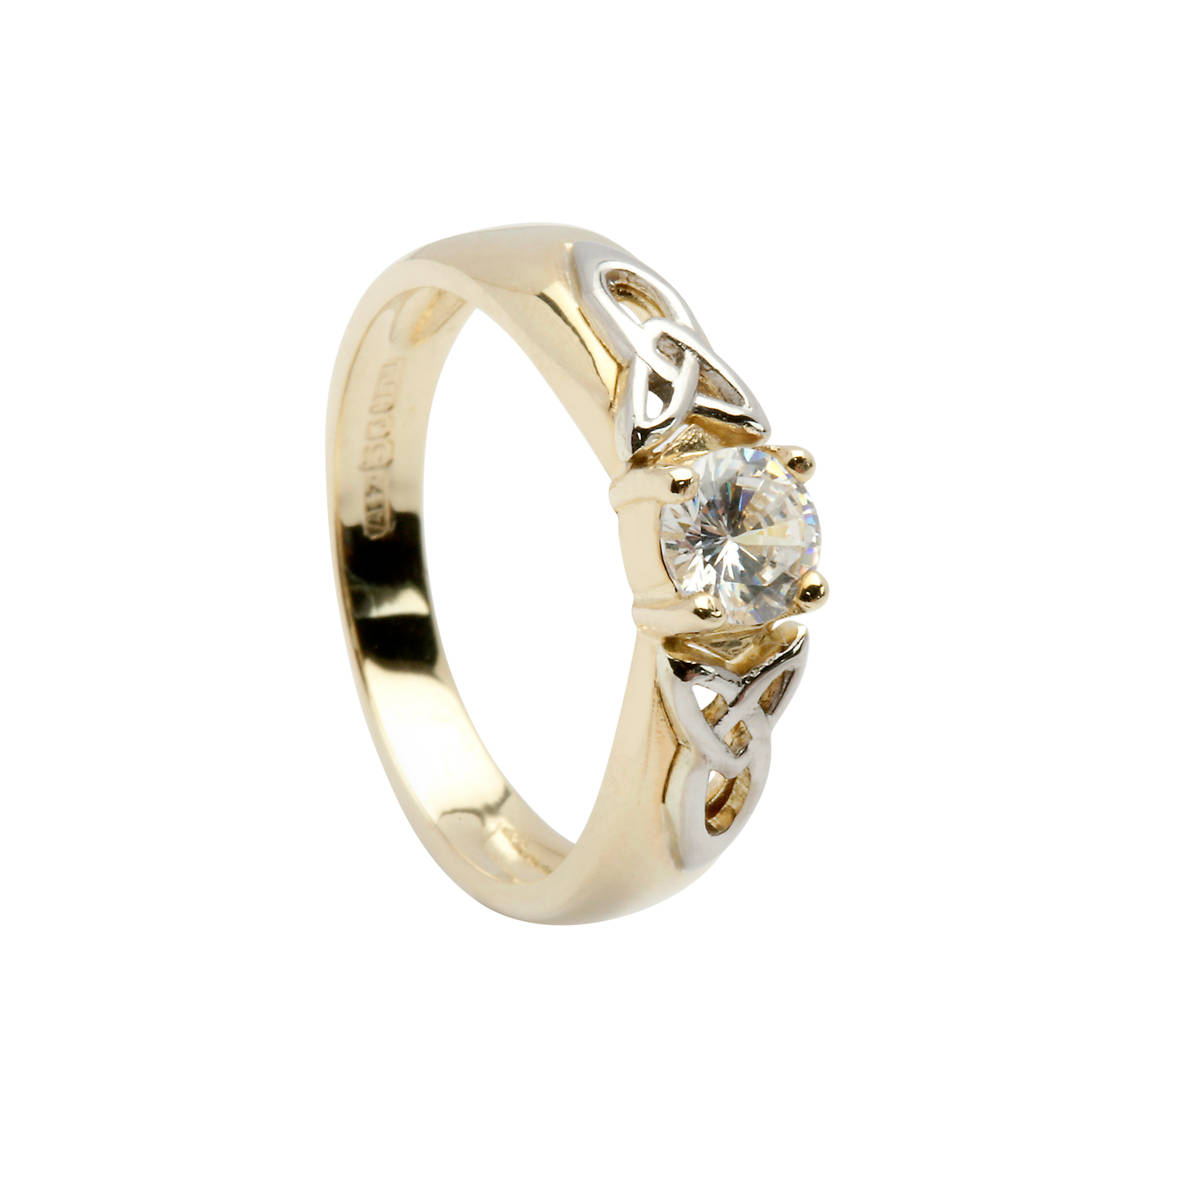 10 carat cz solitaire ring with knot detail